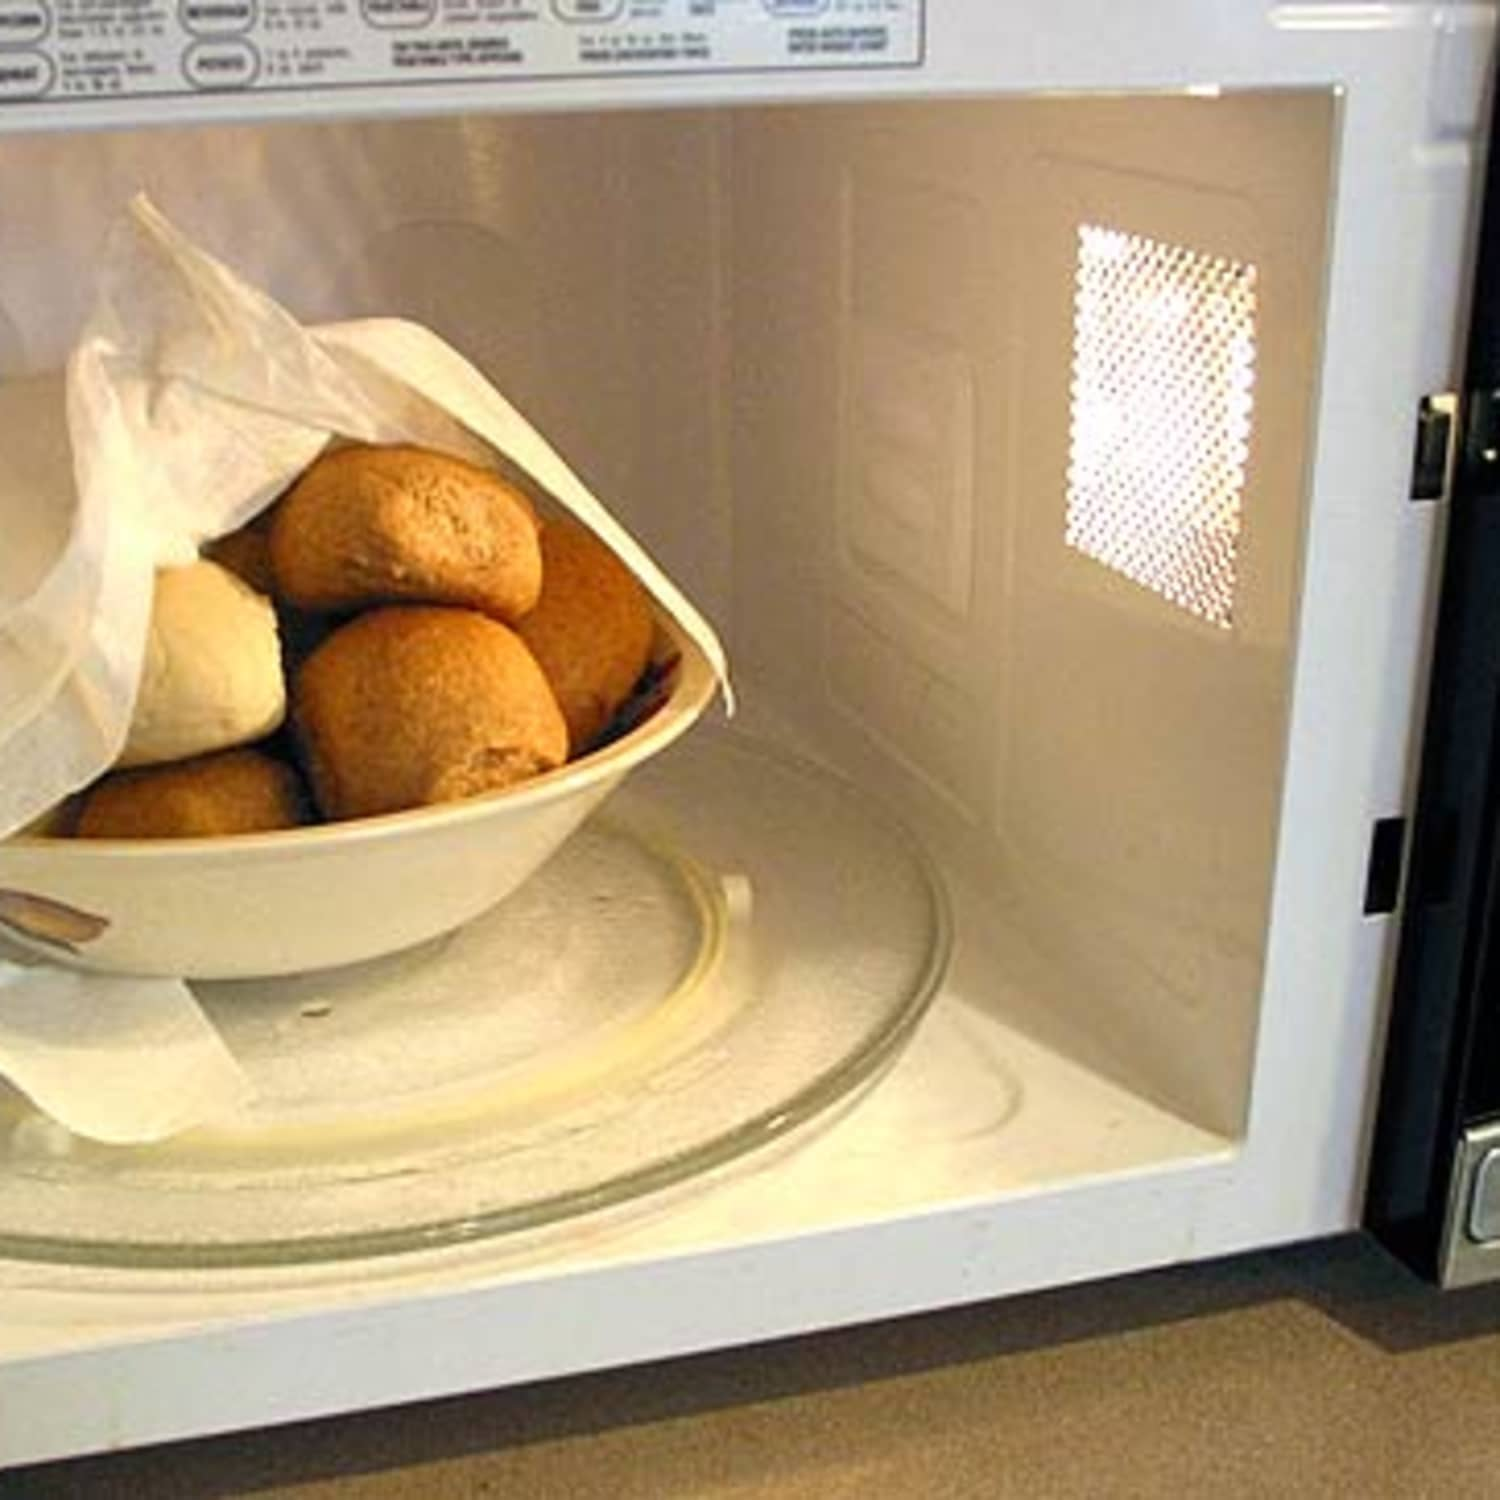 How To Warm Bread In the Microwave | Kitchn